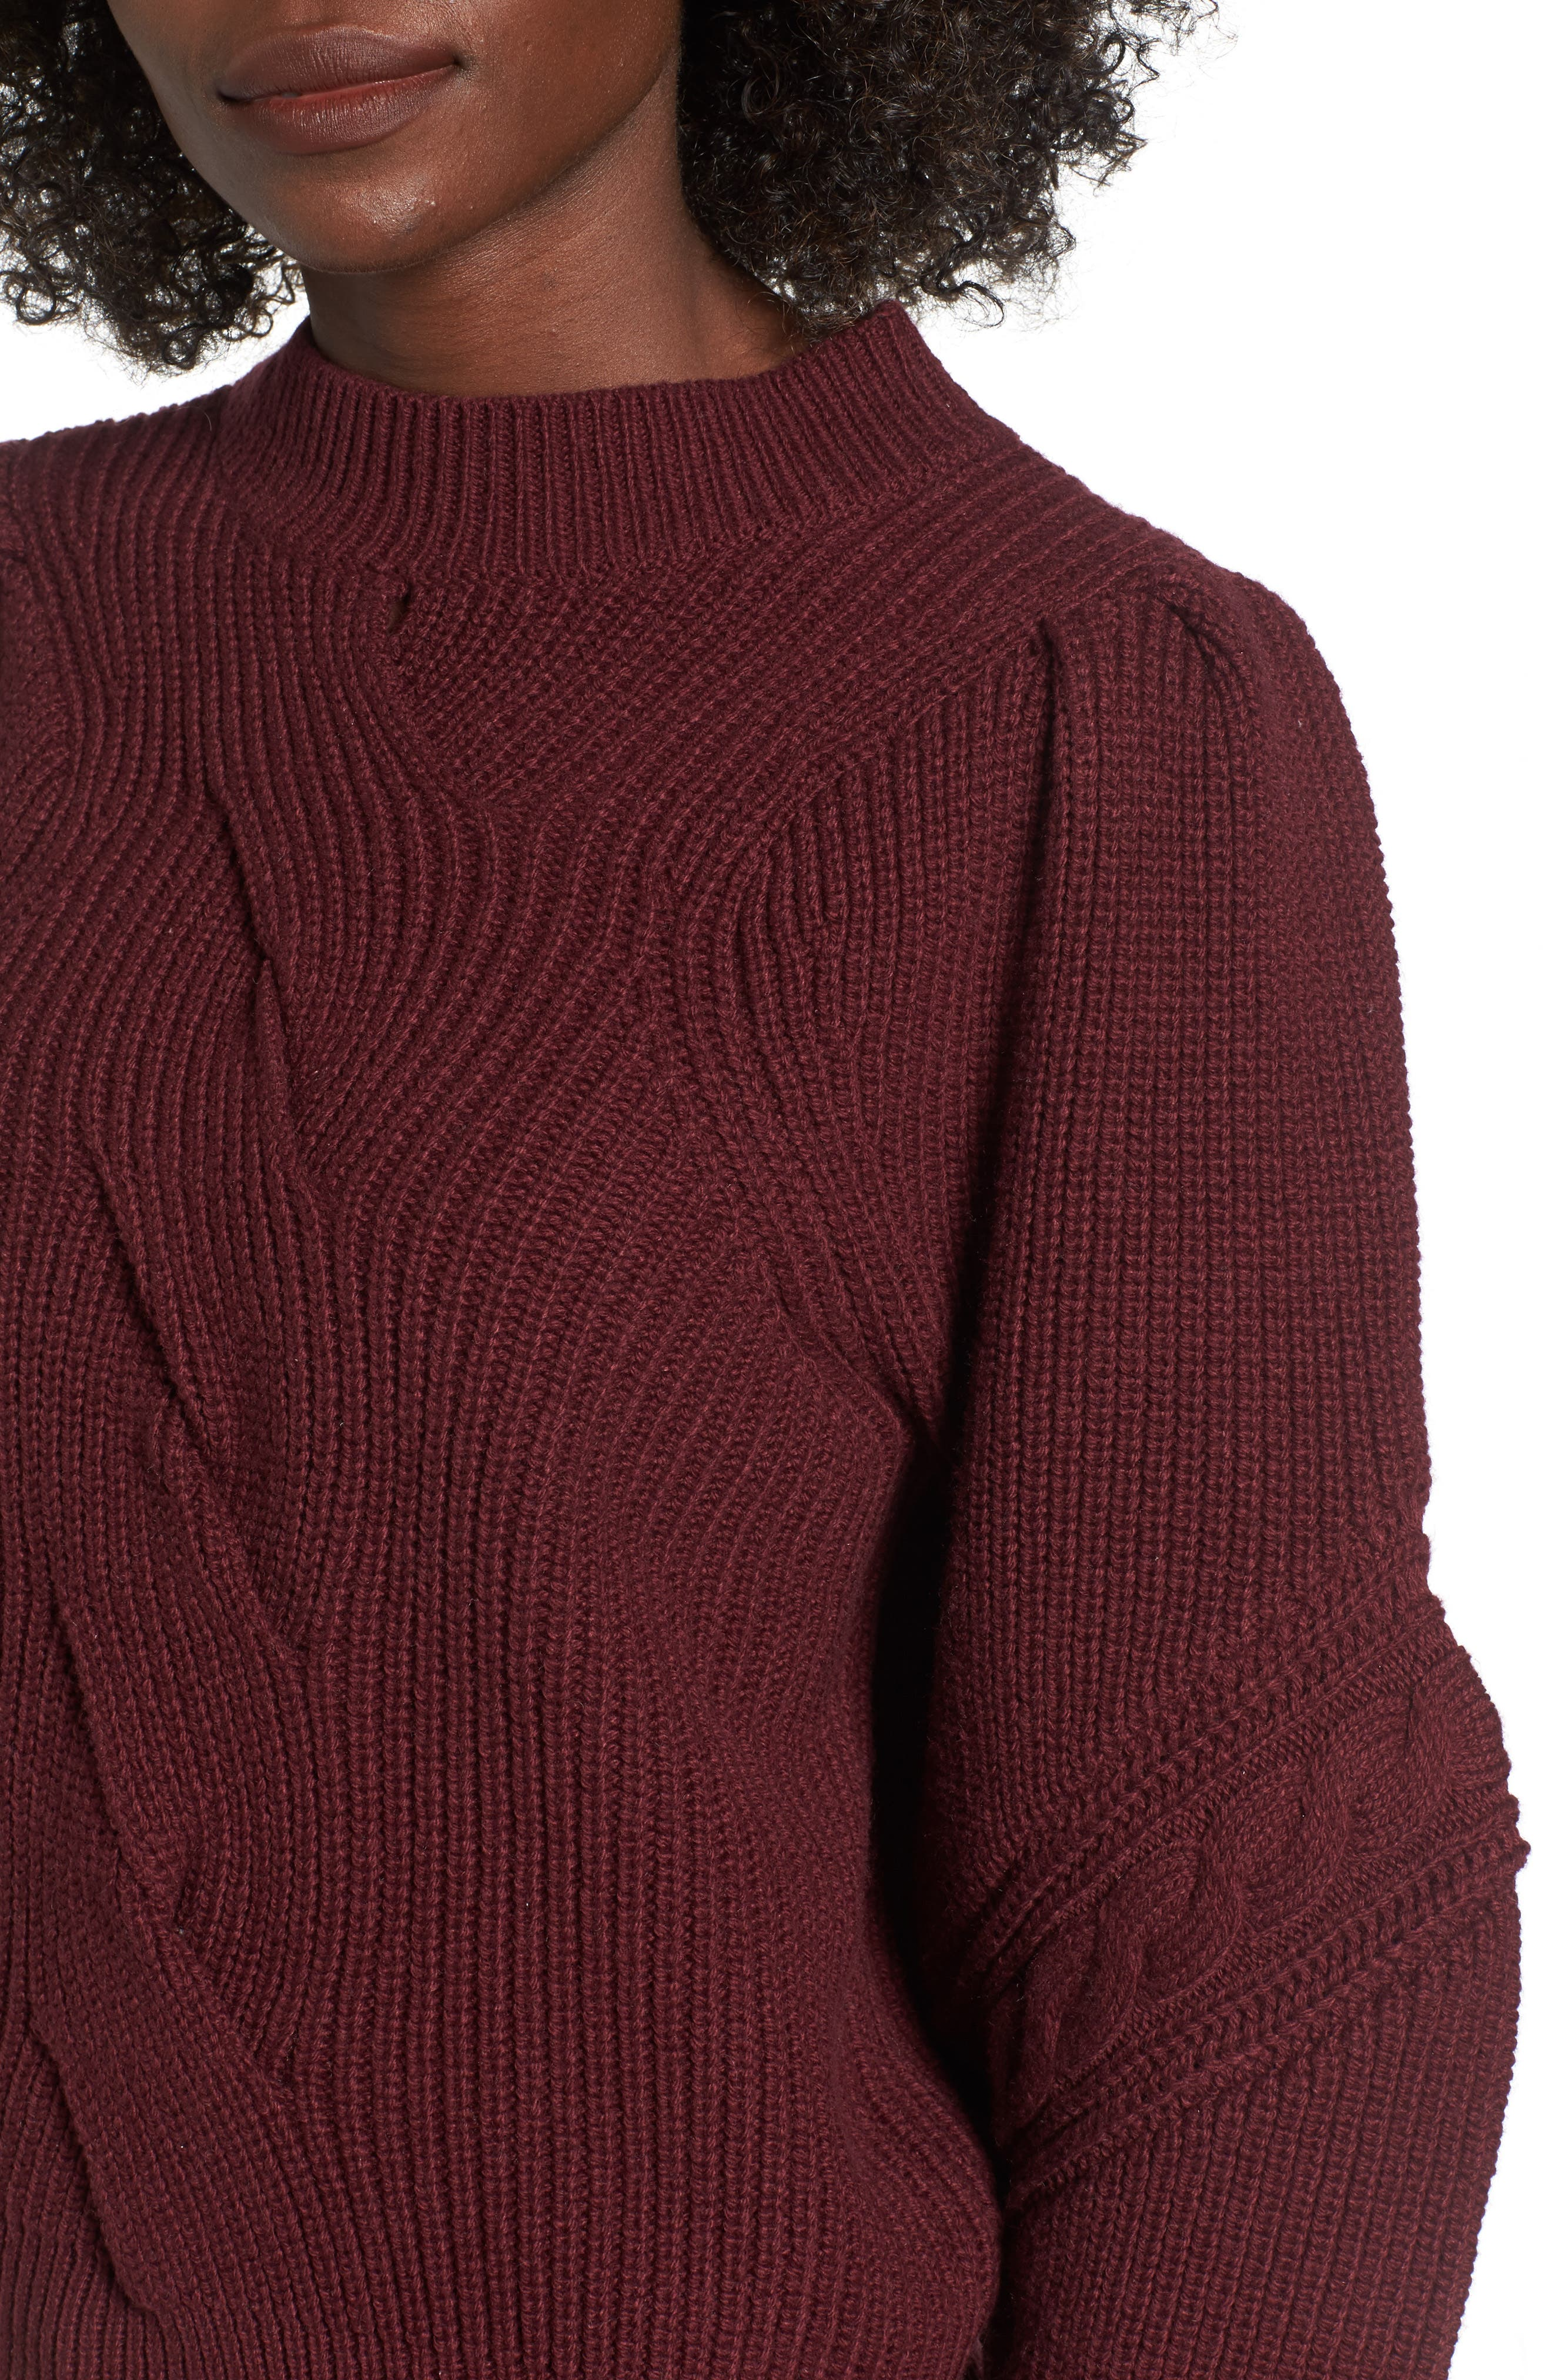 Cable Knit Puff Sleeve Sweater,                             Alternate thumbnail 4, color,                             Burgundy Royale